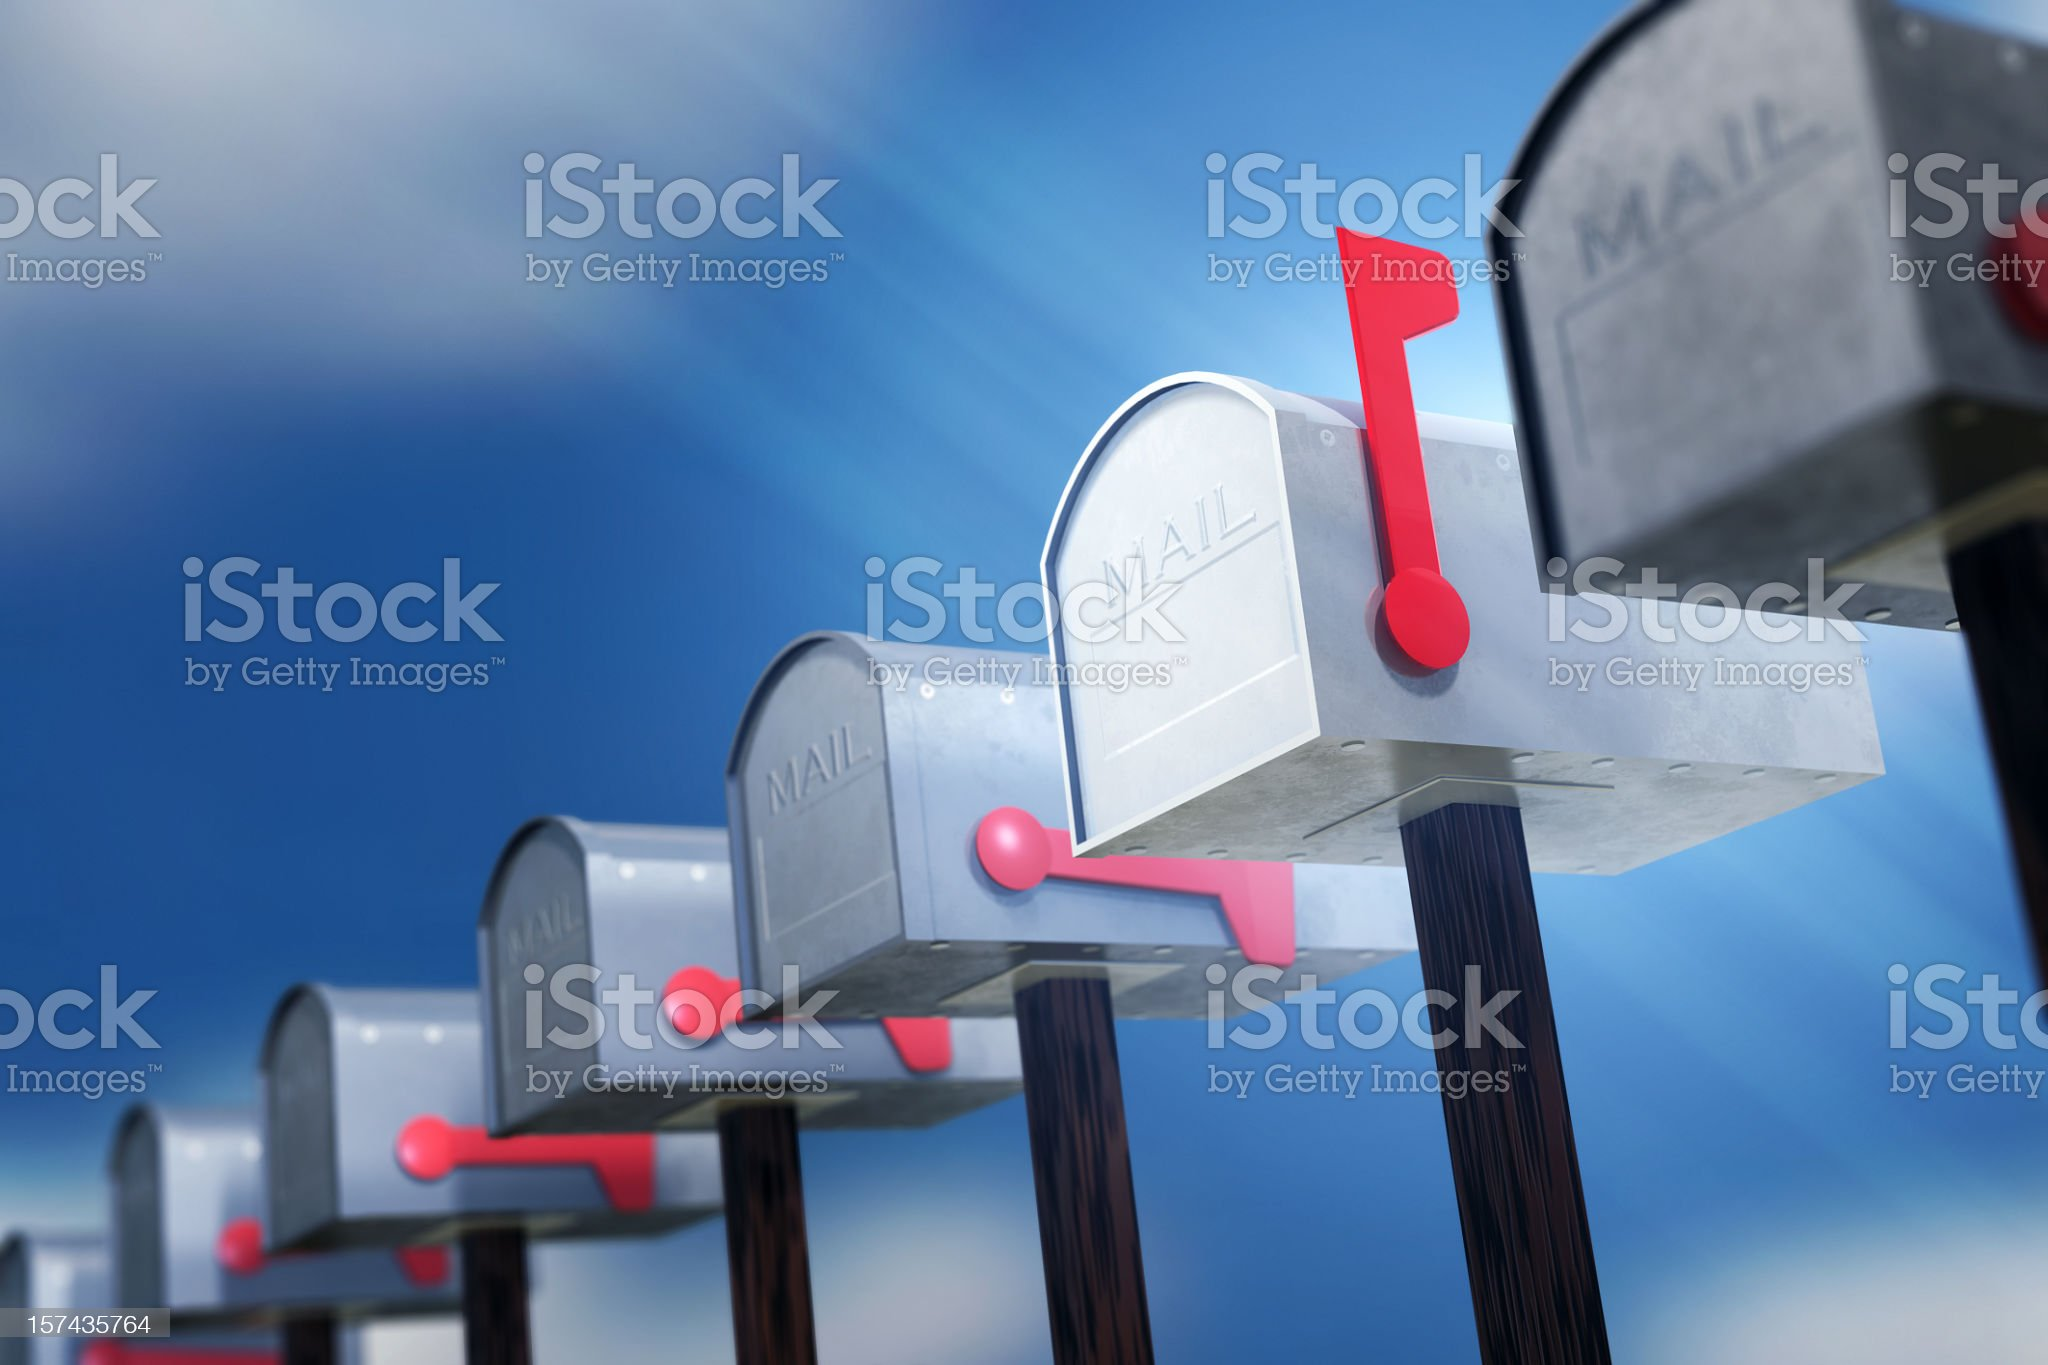 Check Your Mail royalty-free stock photo